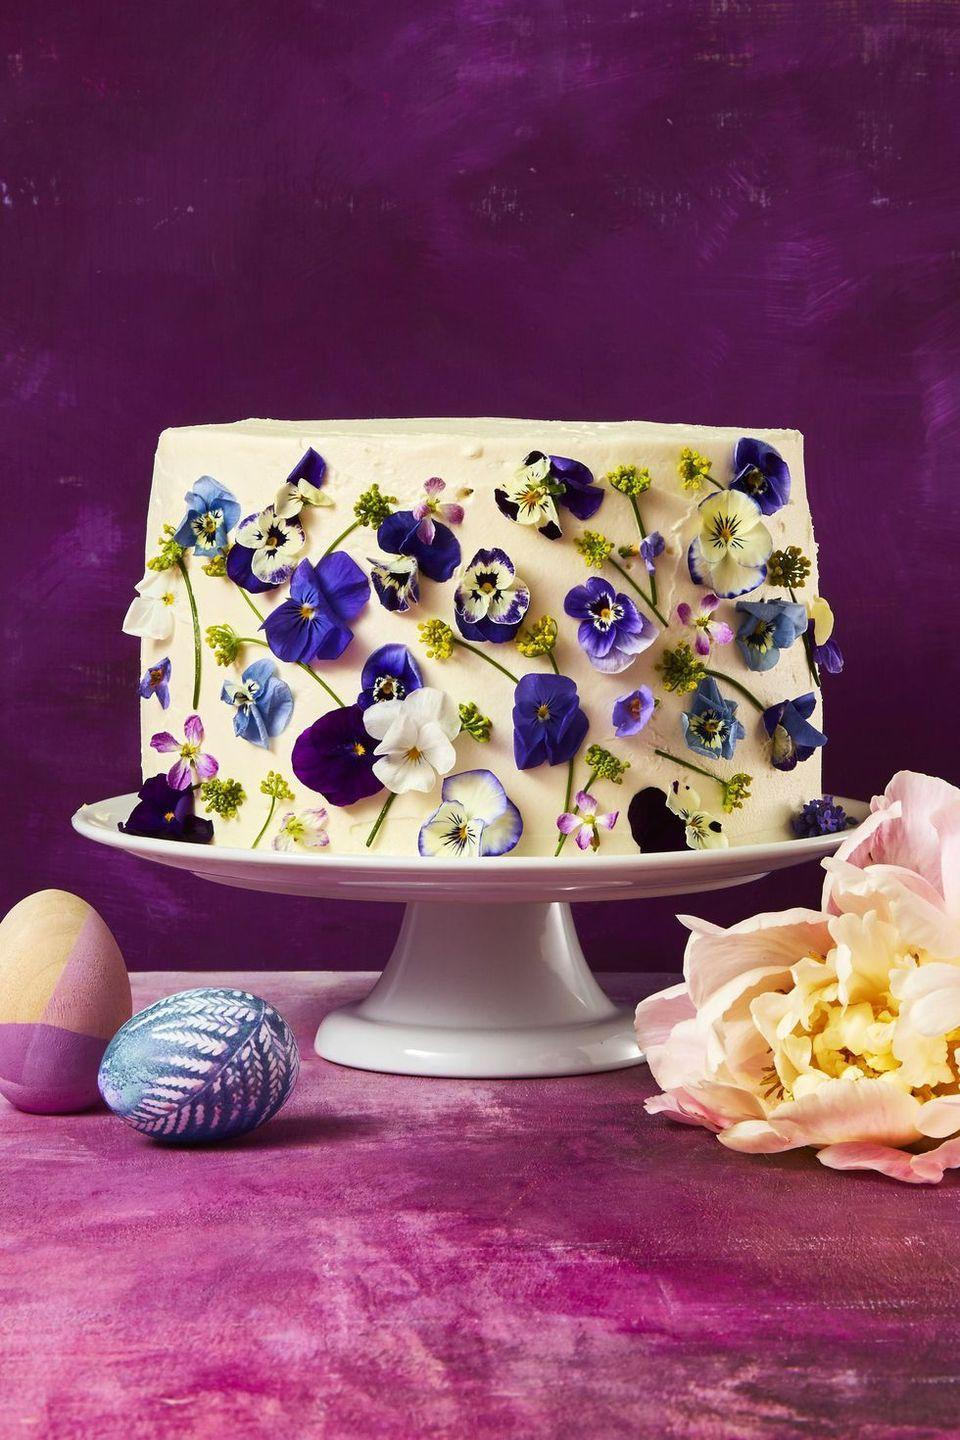 "<p>Well, it looks like you're going to eat your floral centerpiece this year. </p><p><em><a href=""https://www.goodhousekeeping.com/food-recipes/dessert/a48178/vanilla-blossom-cake-recipe/"" rel=""nofollow noopener"" target=""_blank"" data-ylk=""slk:Get the recipe for Vanilla Blossom Cake »"" class=""link rapid-noclick-resp"">Get the recipe for Vanilla Blossom Cake »</a></em></p>"